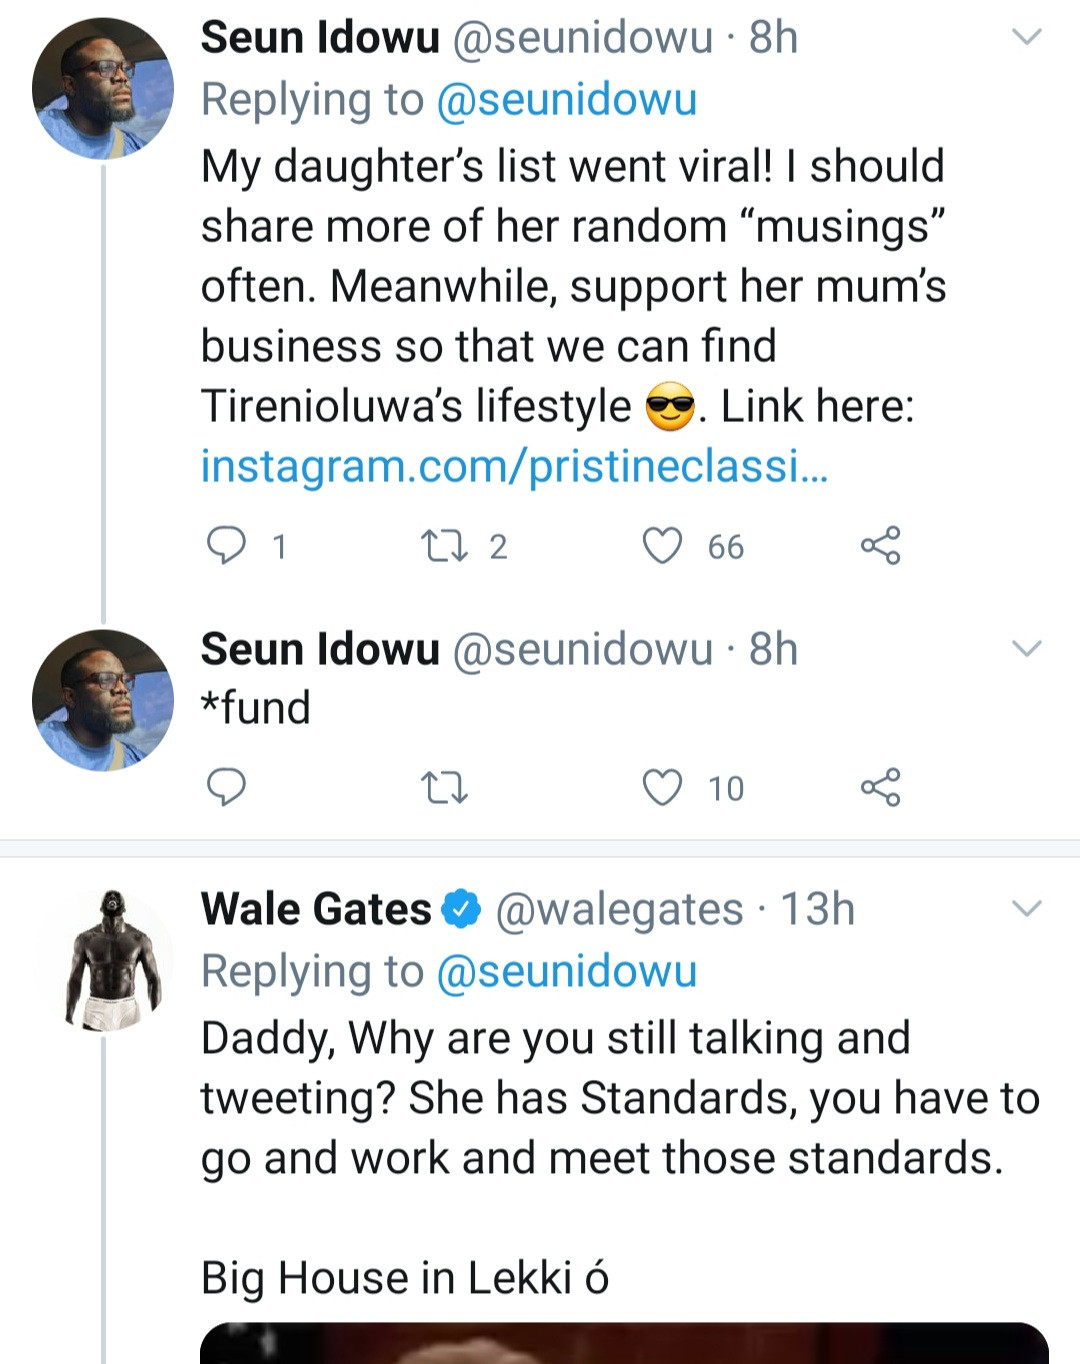 Nigerian father shares his daughter